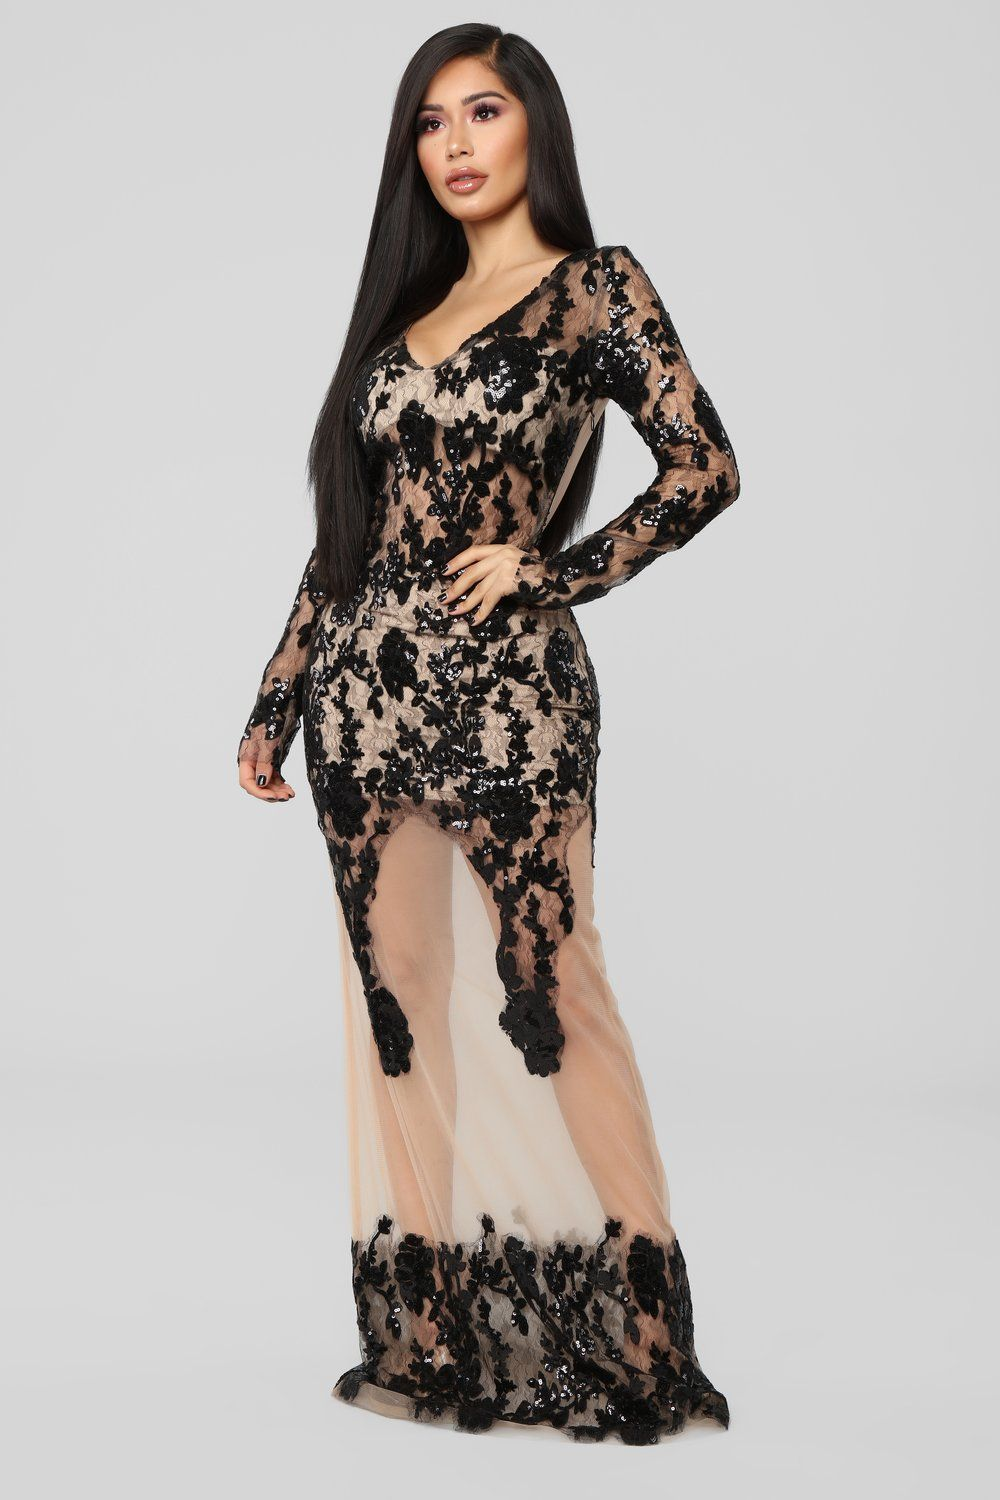 Lingering desire embroidered dress blacknude in style